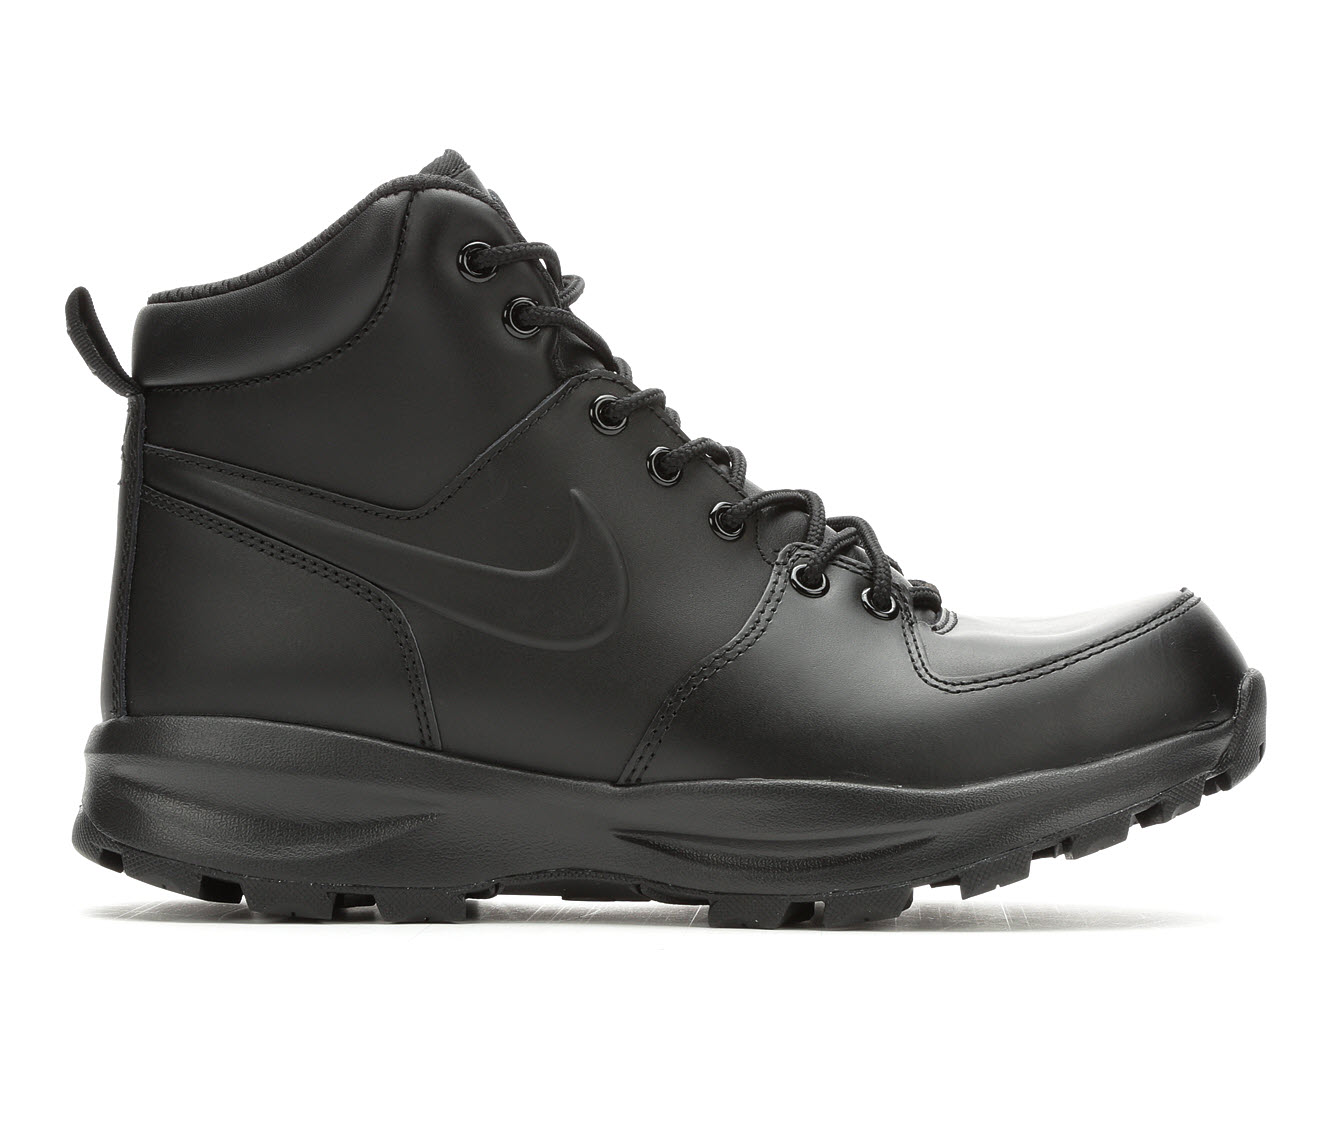 Nike Manoa Leather Lace-Up Men's Boots (Black Leather)